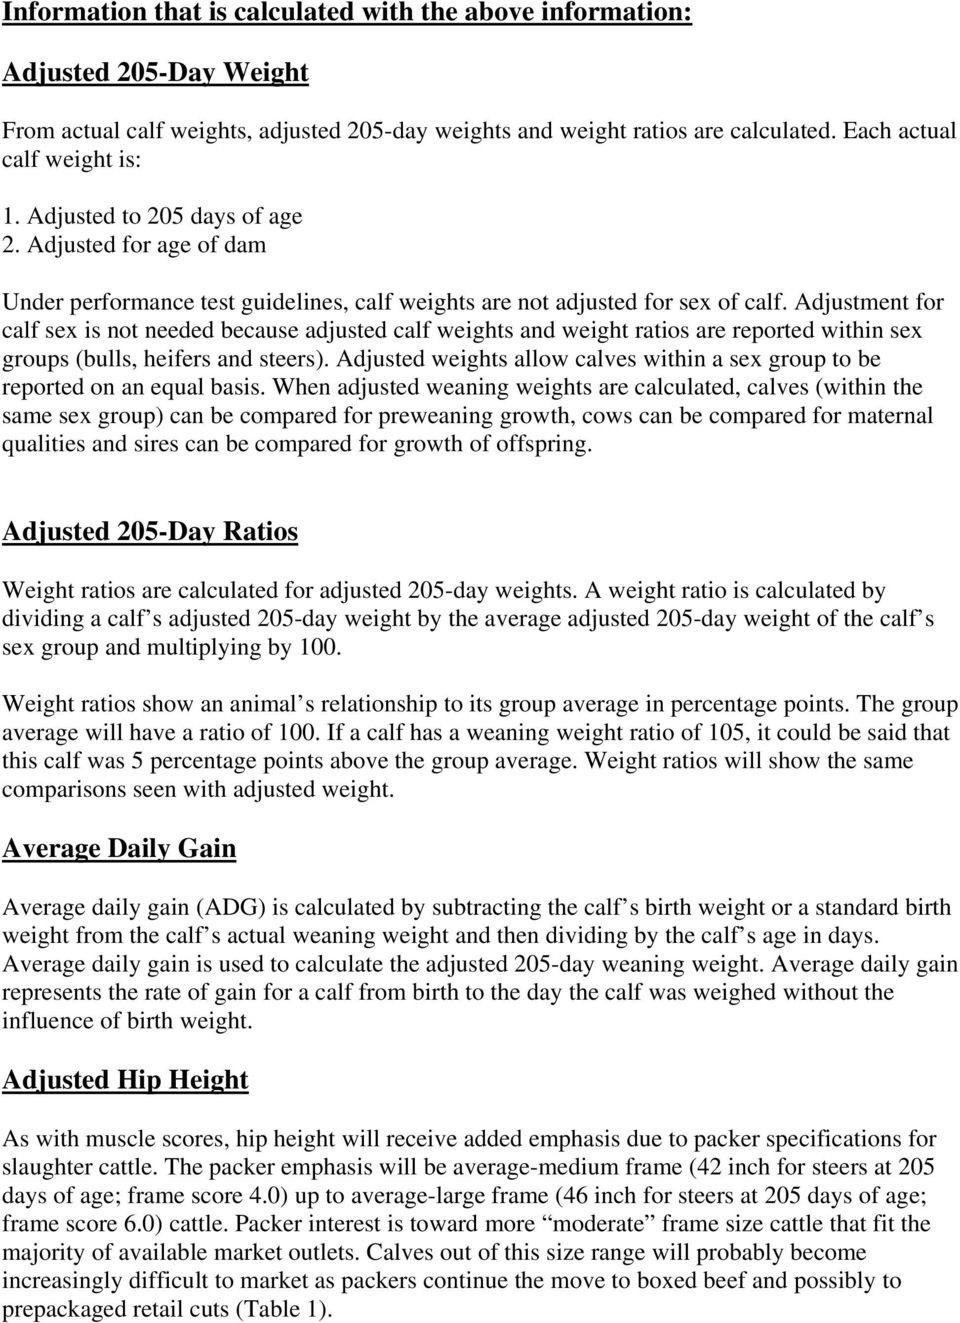 Adjustment for calf sex is not needed because adjusted calf weights and weight ratios are reported within sex groups (bulls, heifers and steers).